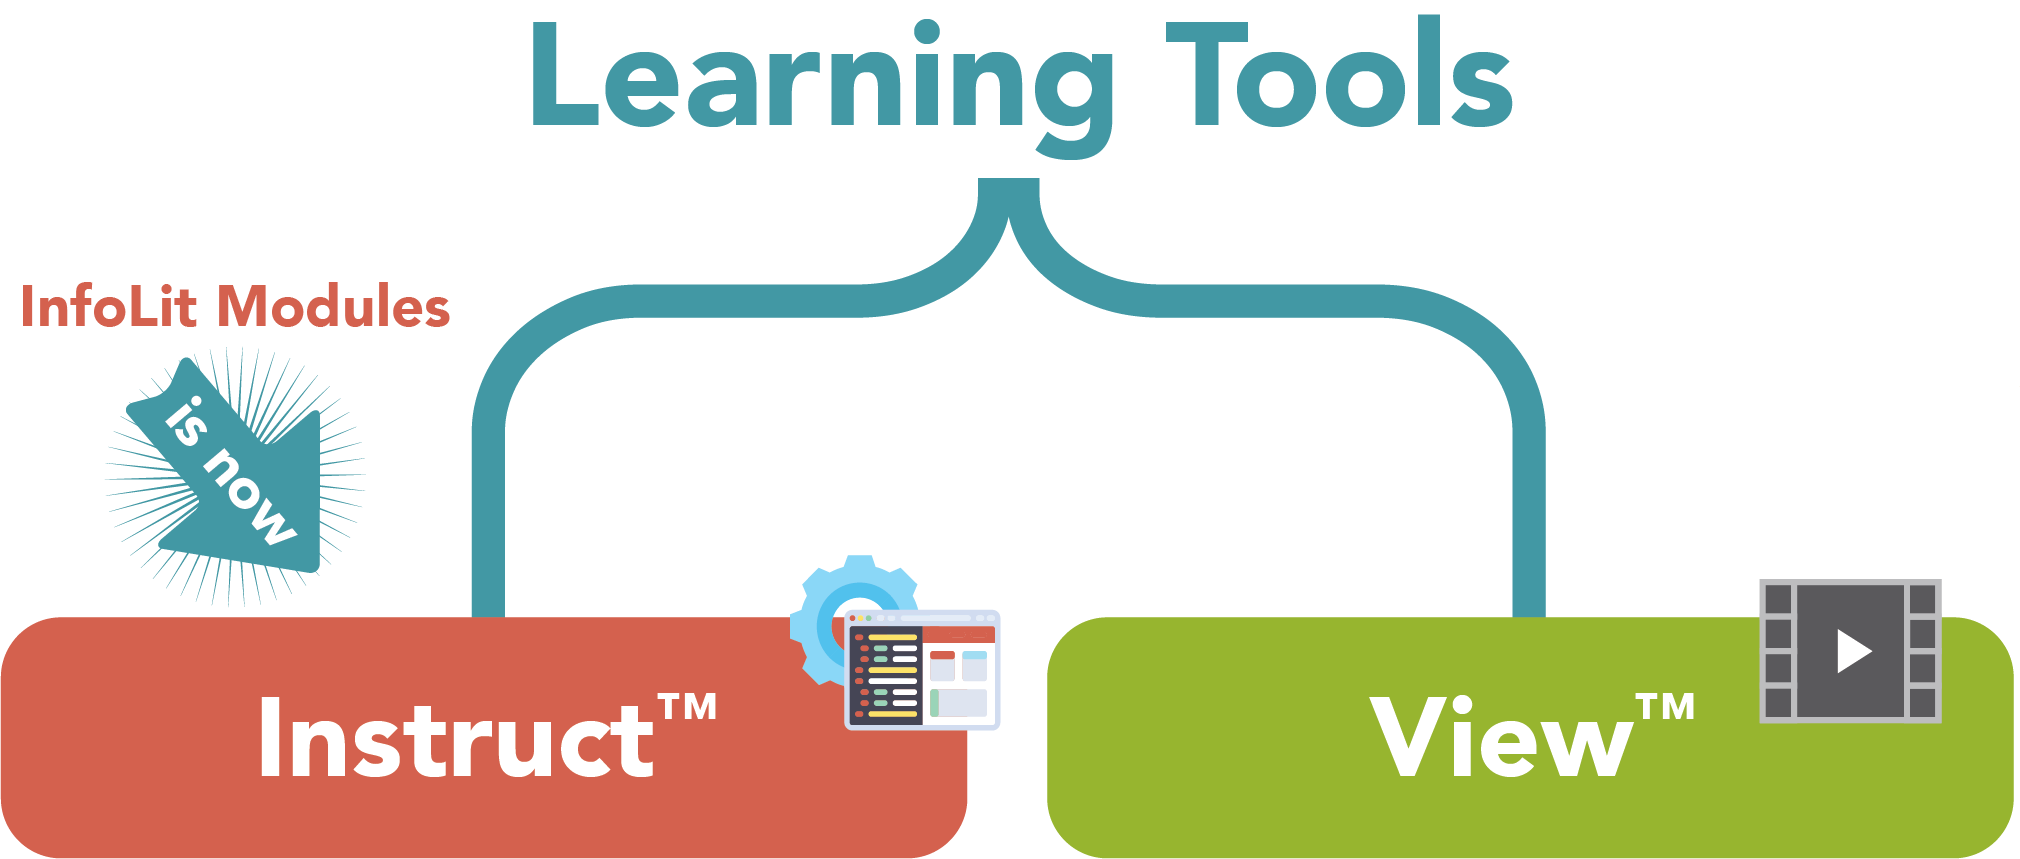 LearningTools_Instruct_View_Graphic-1